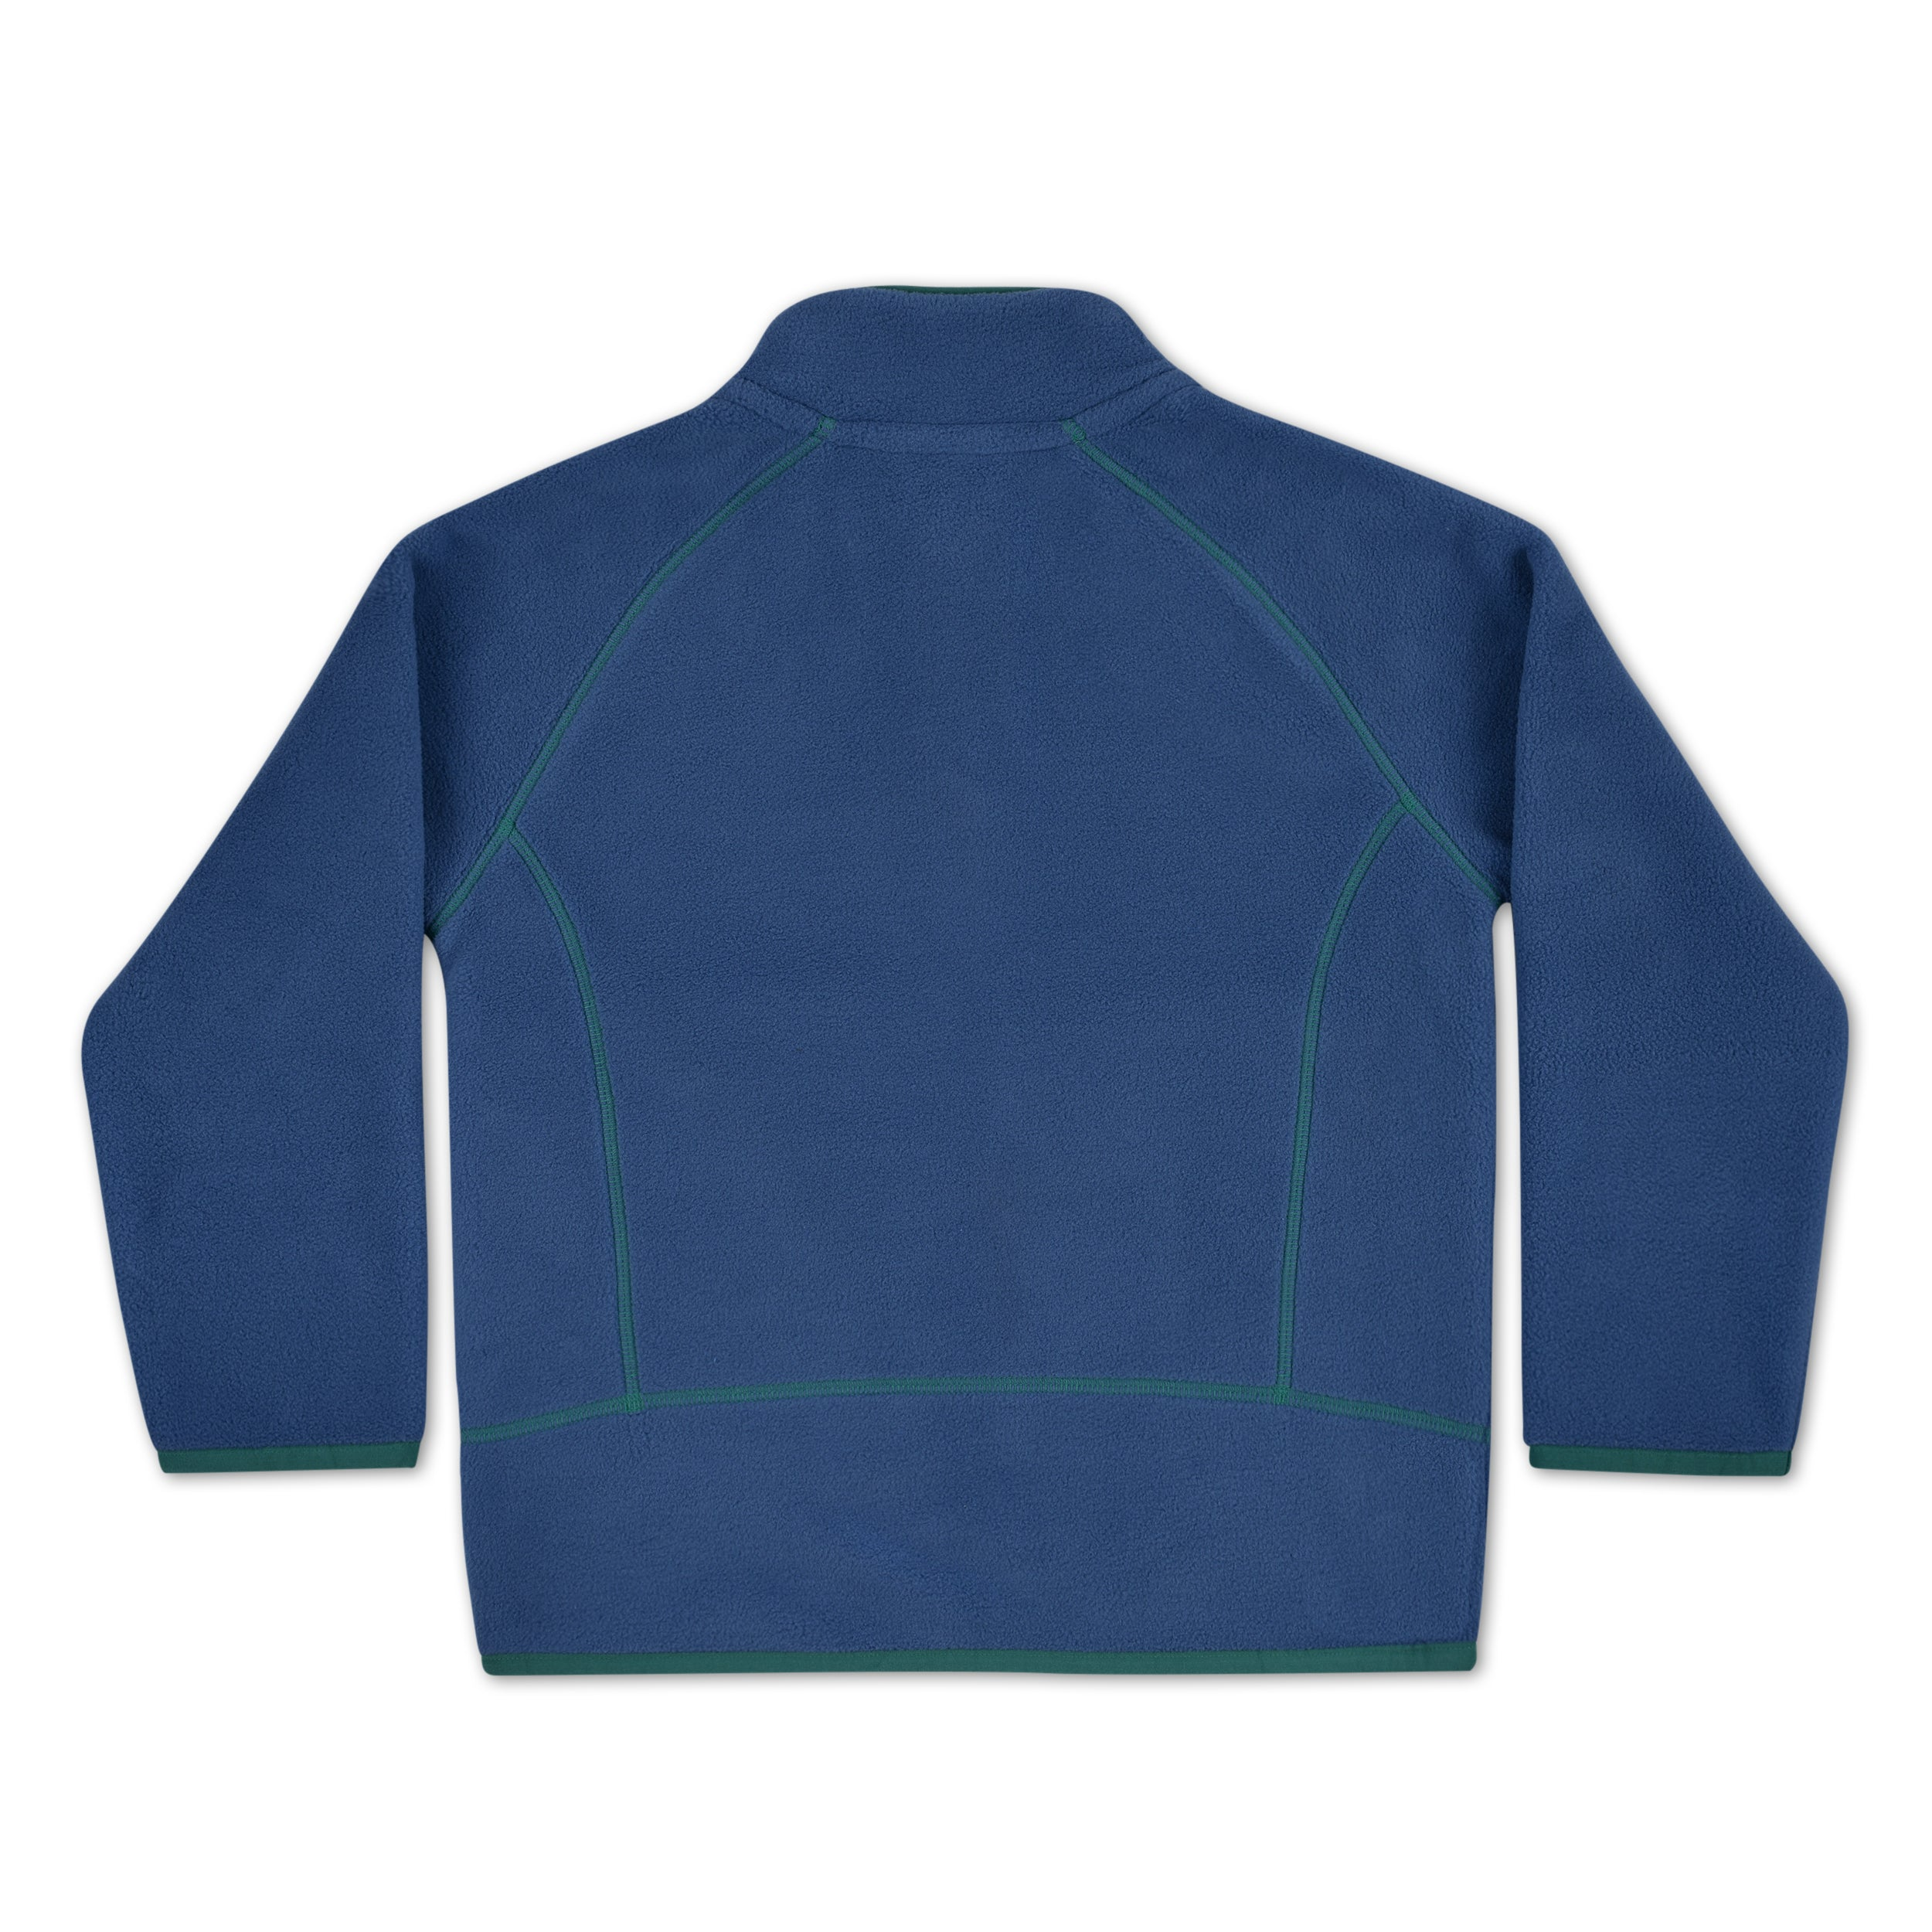 Premium Polartec® Fleece Jacket Navy/Green by OAKI (Pre-Order)